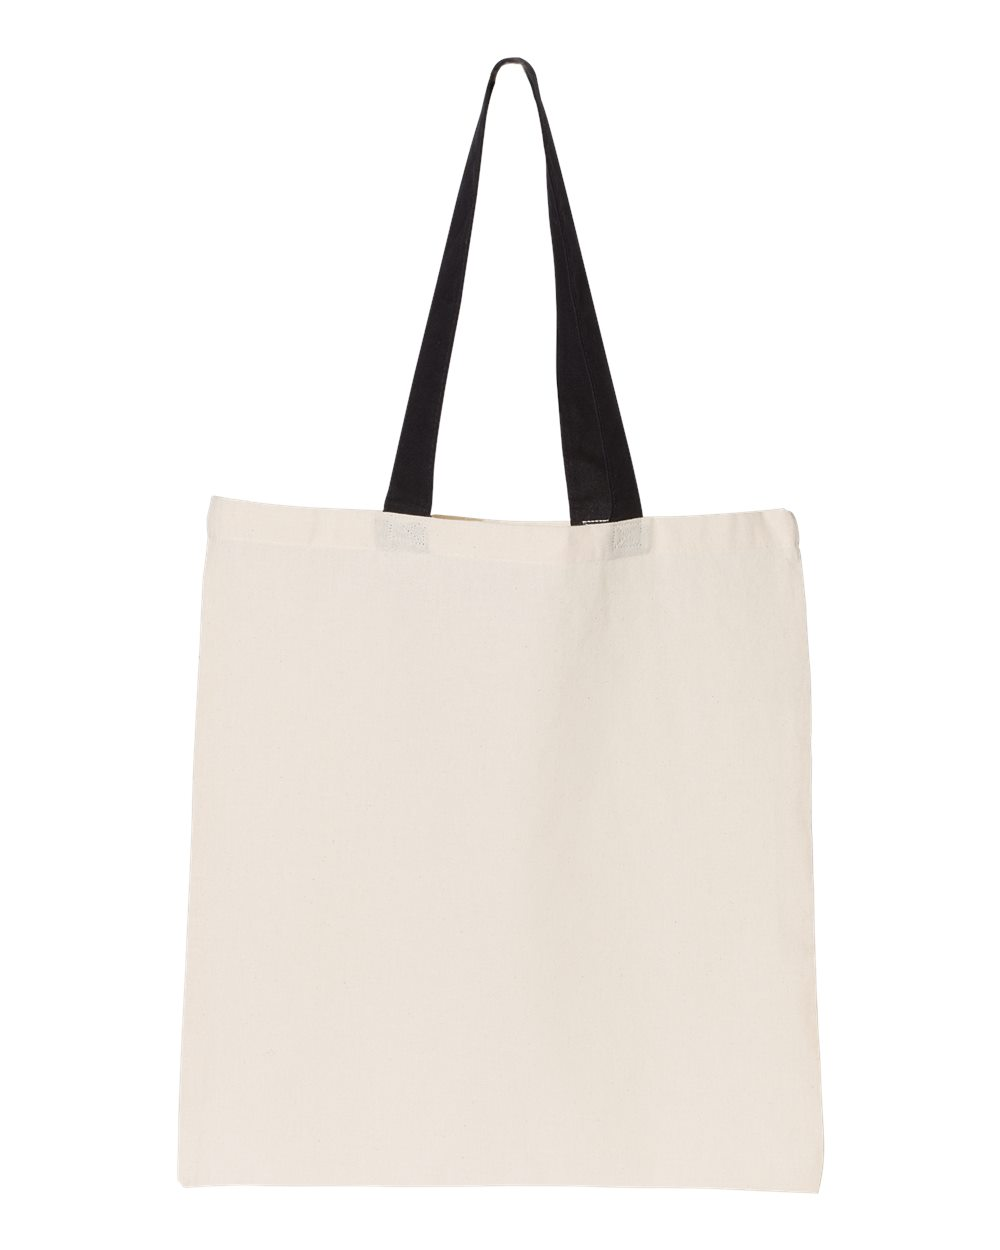 OAD OAD105 - Contrasting Handles Tote